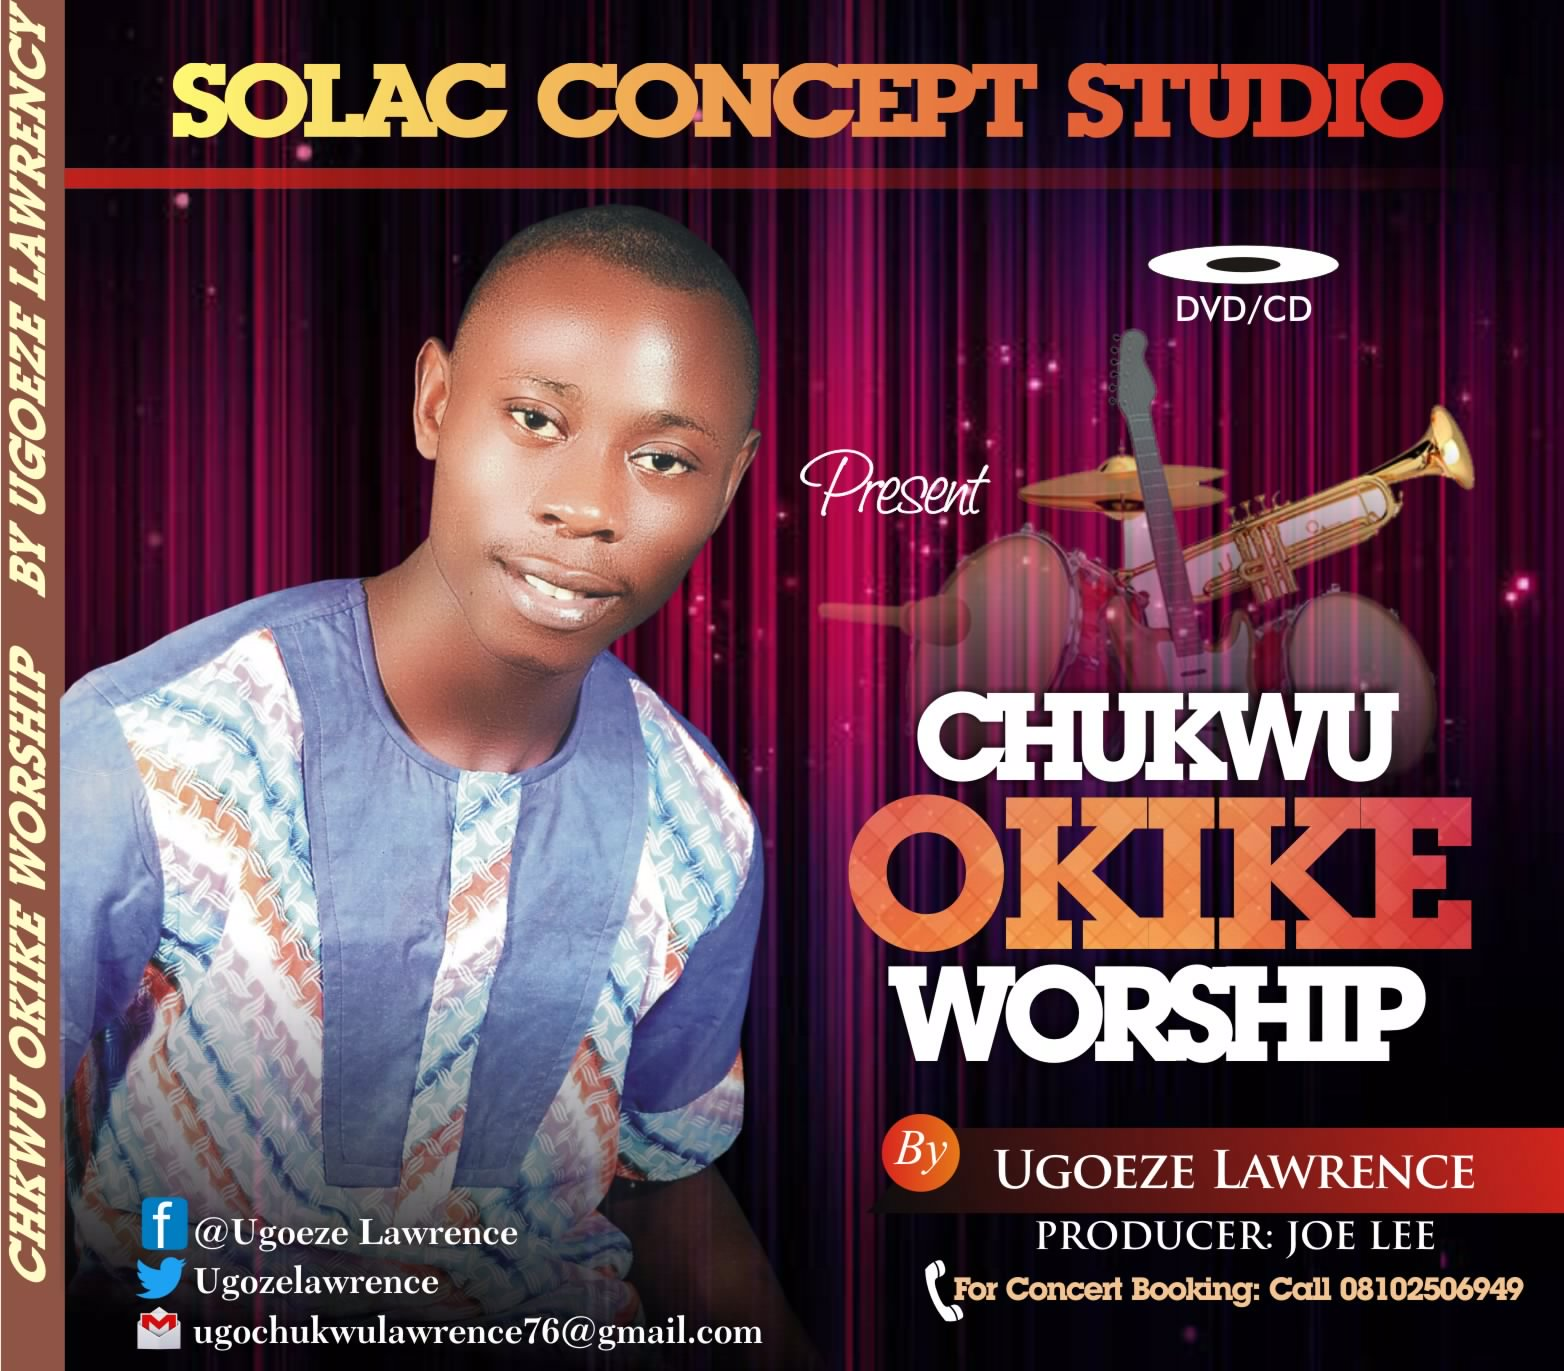 Solac Concept presents CHUKWU OKIKE WORSHIP by Ugoeze Lawrence